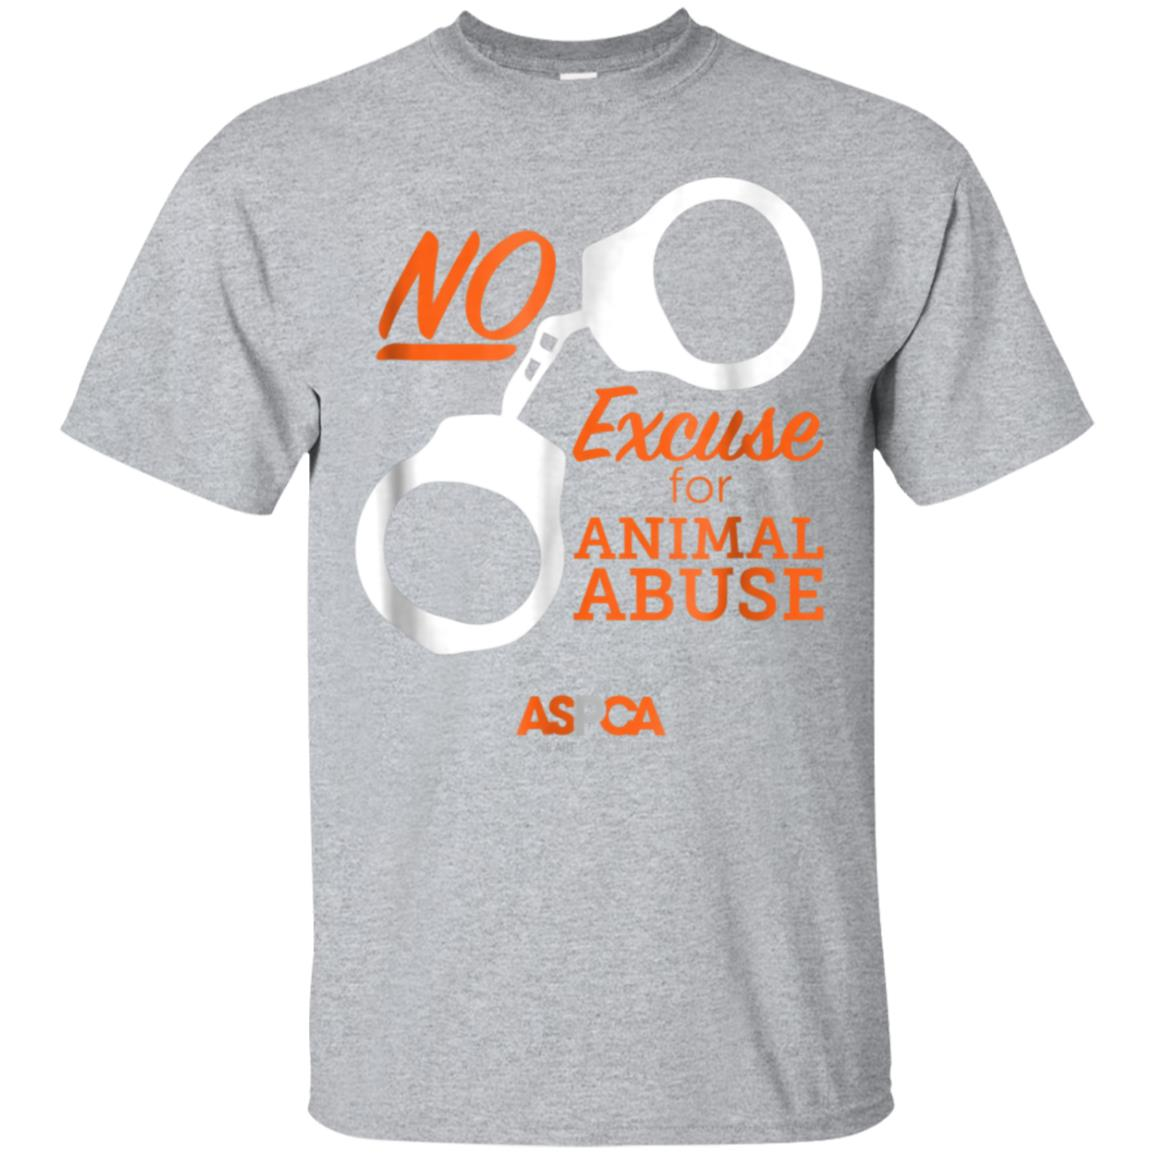 ASPCA No Excuse for Animal Abuse T-Shirt Dark 99promocode